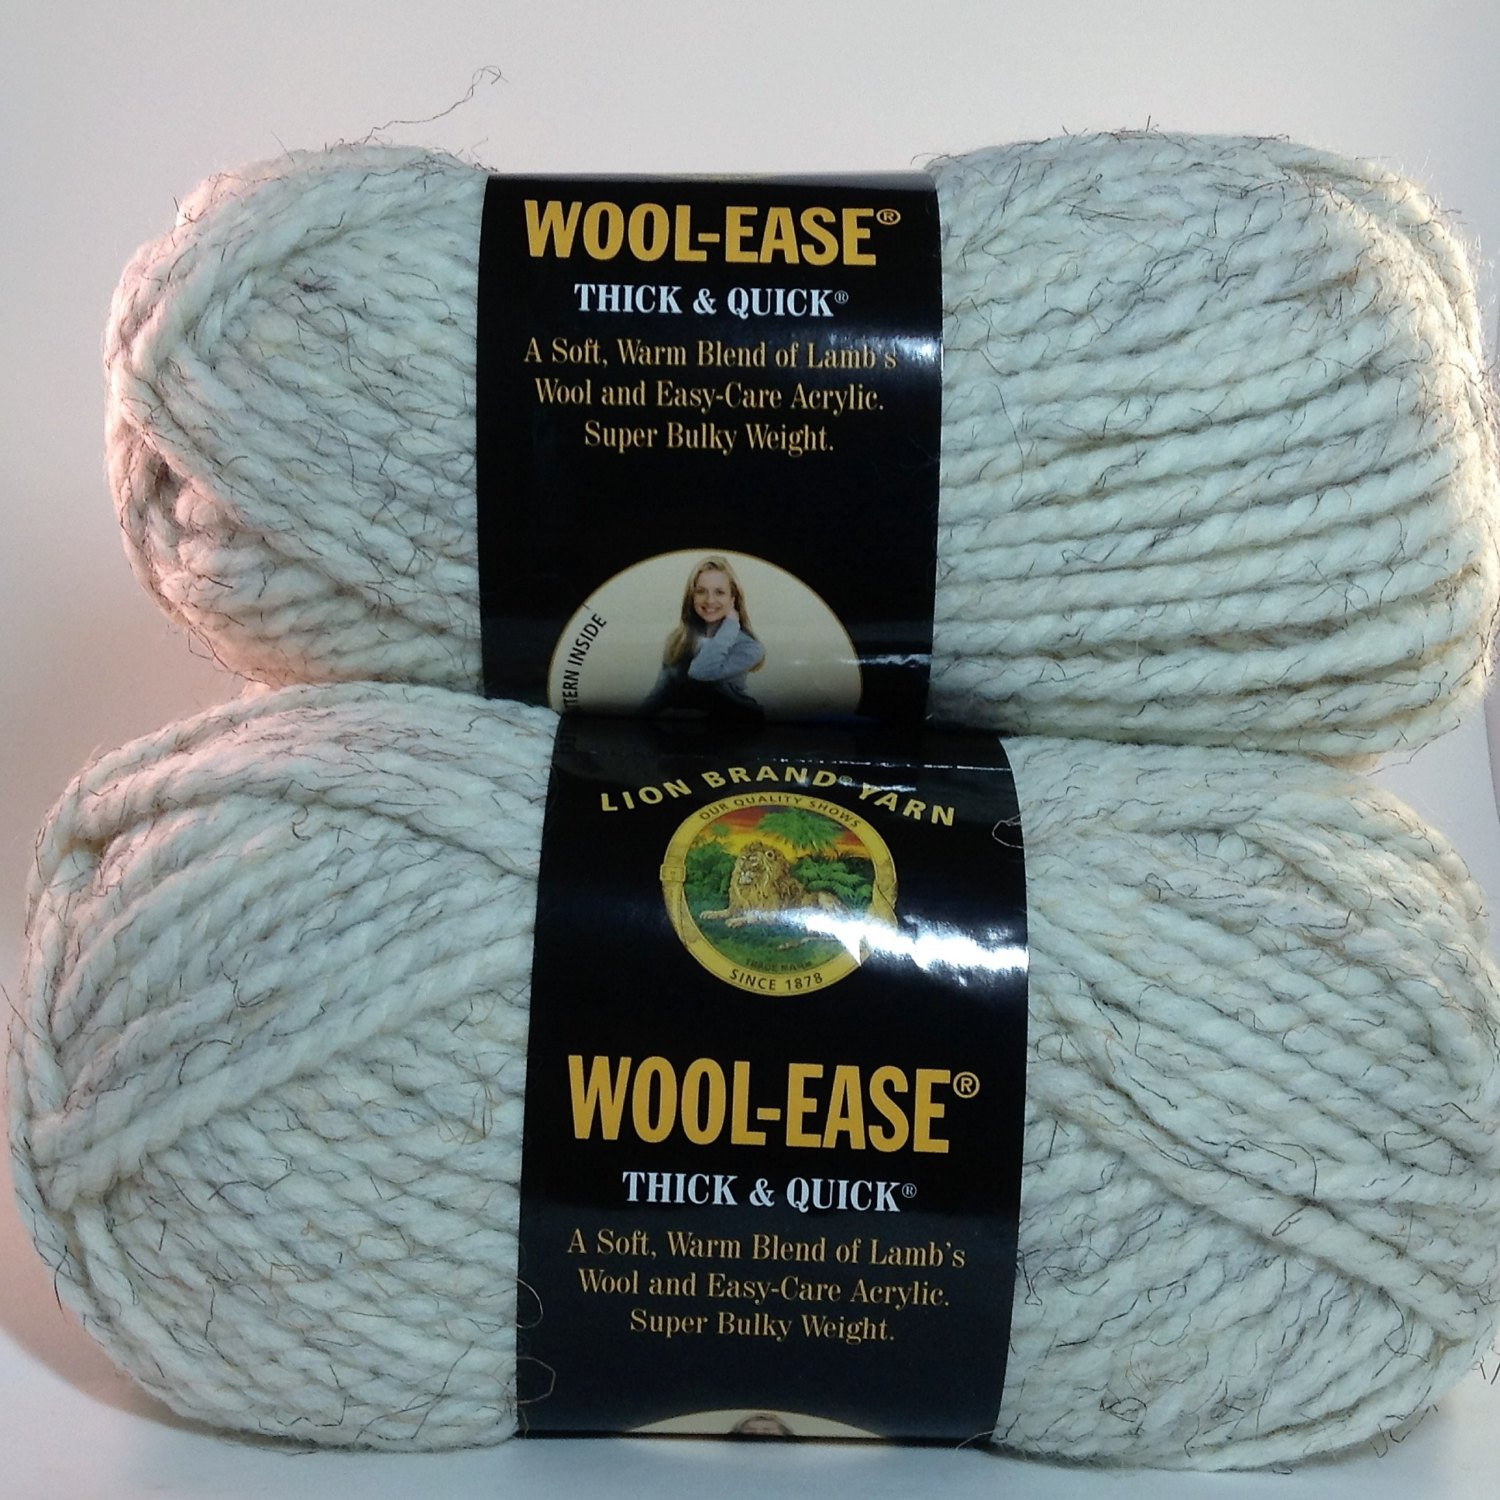 Wool Ease Thick & Quick Yarn Awesome Lion Brand Yarn Wool Ease Thick & Quick In Color Wheat Lot Of Of Great 46 Pictures Wool Ease Thick & Quick Yarn